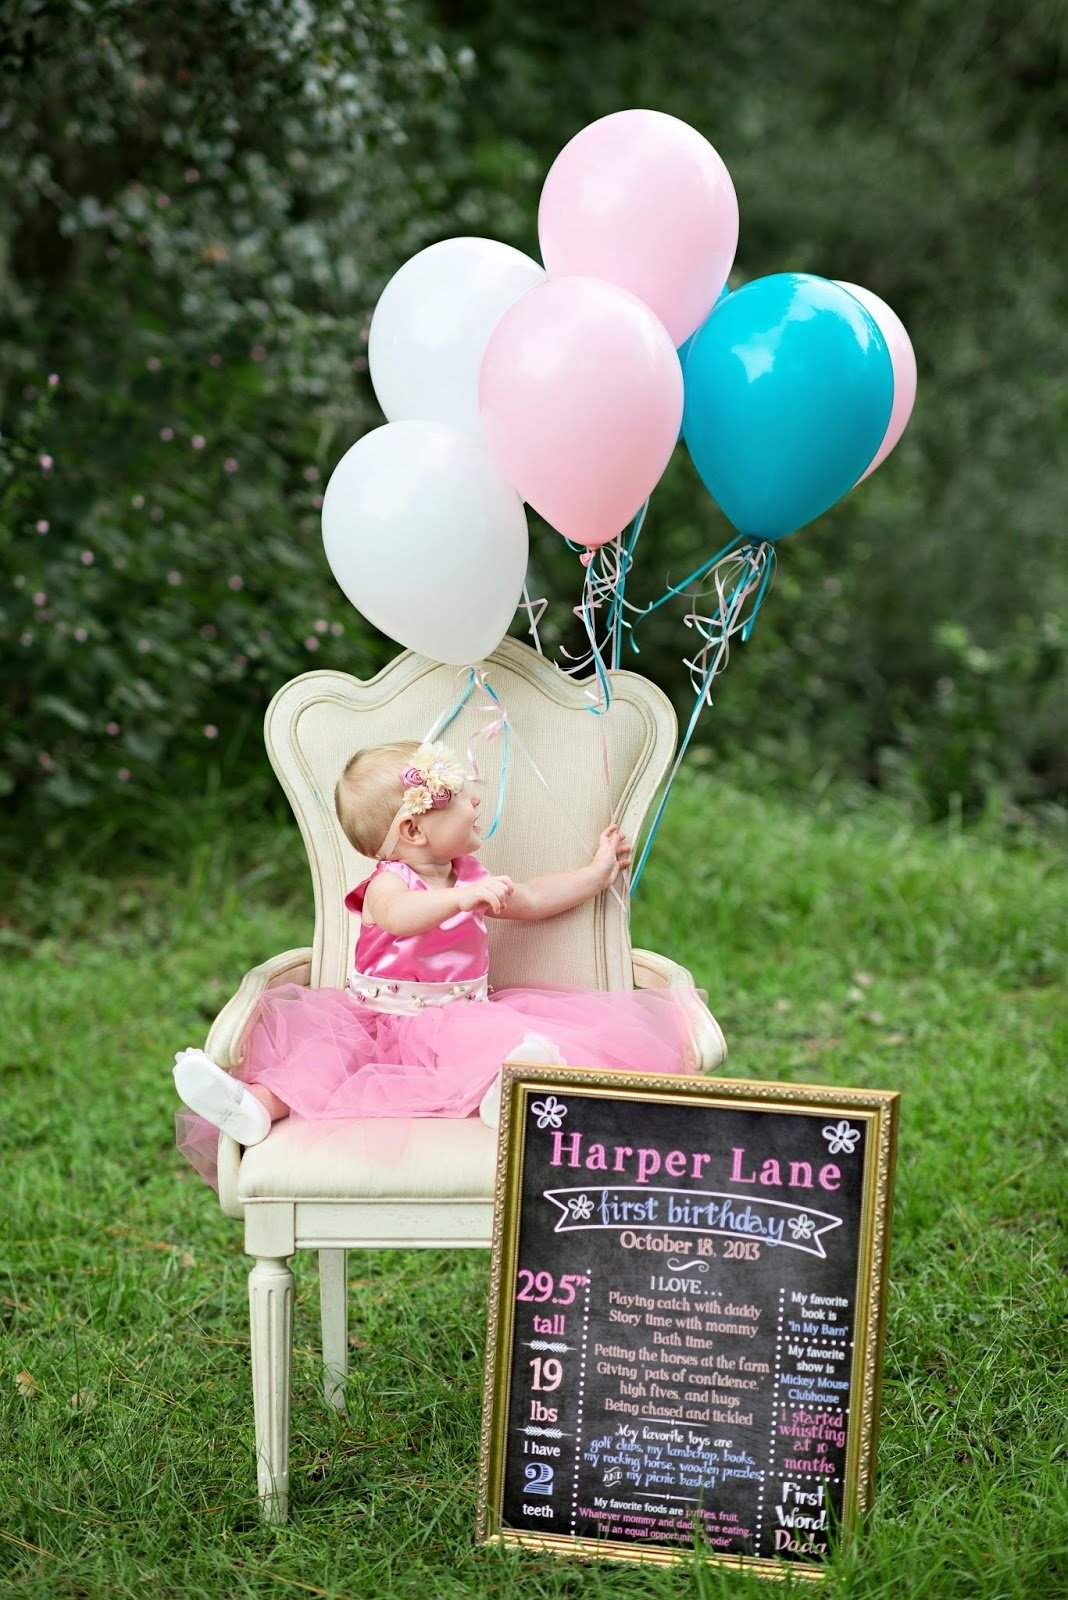 10 Fabulous 1St Birthday Photo Shoot Ideas babies harper lanes first birthday photoshoot life baby baby 2020